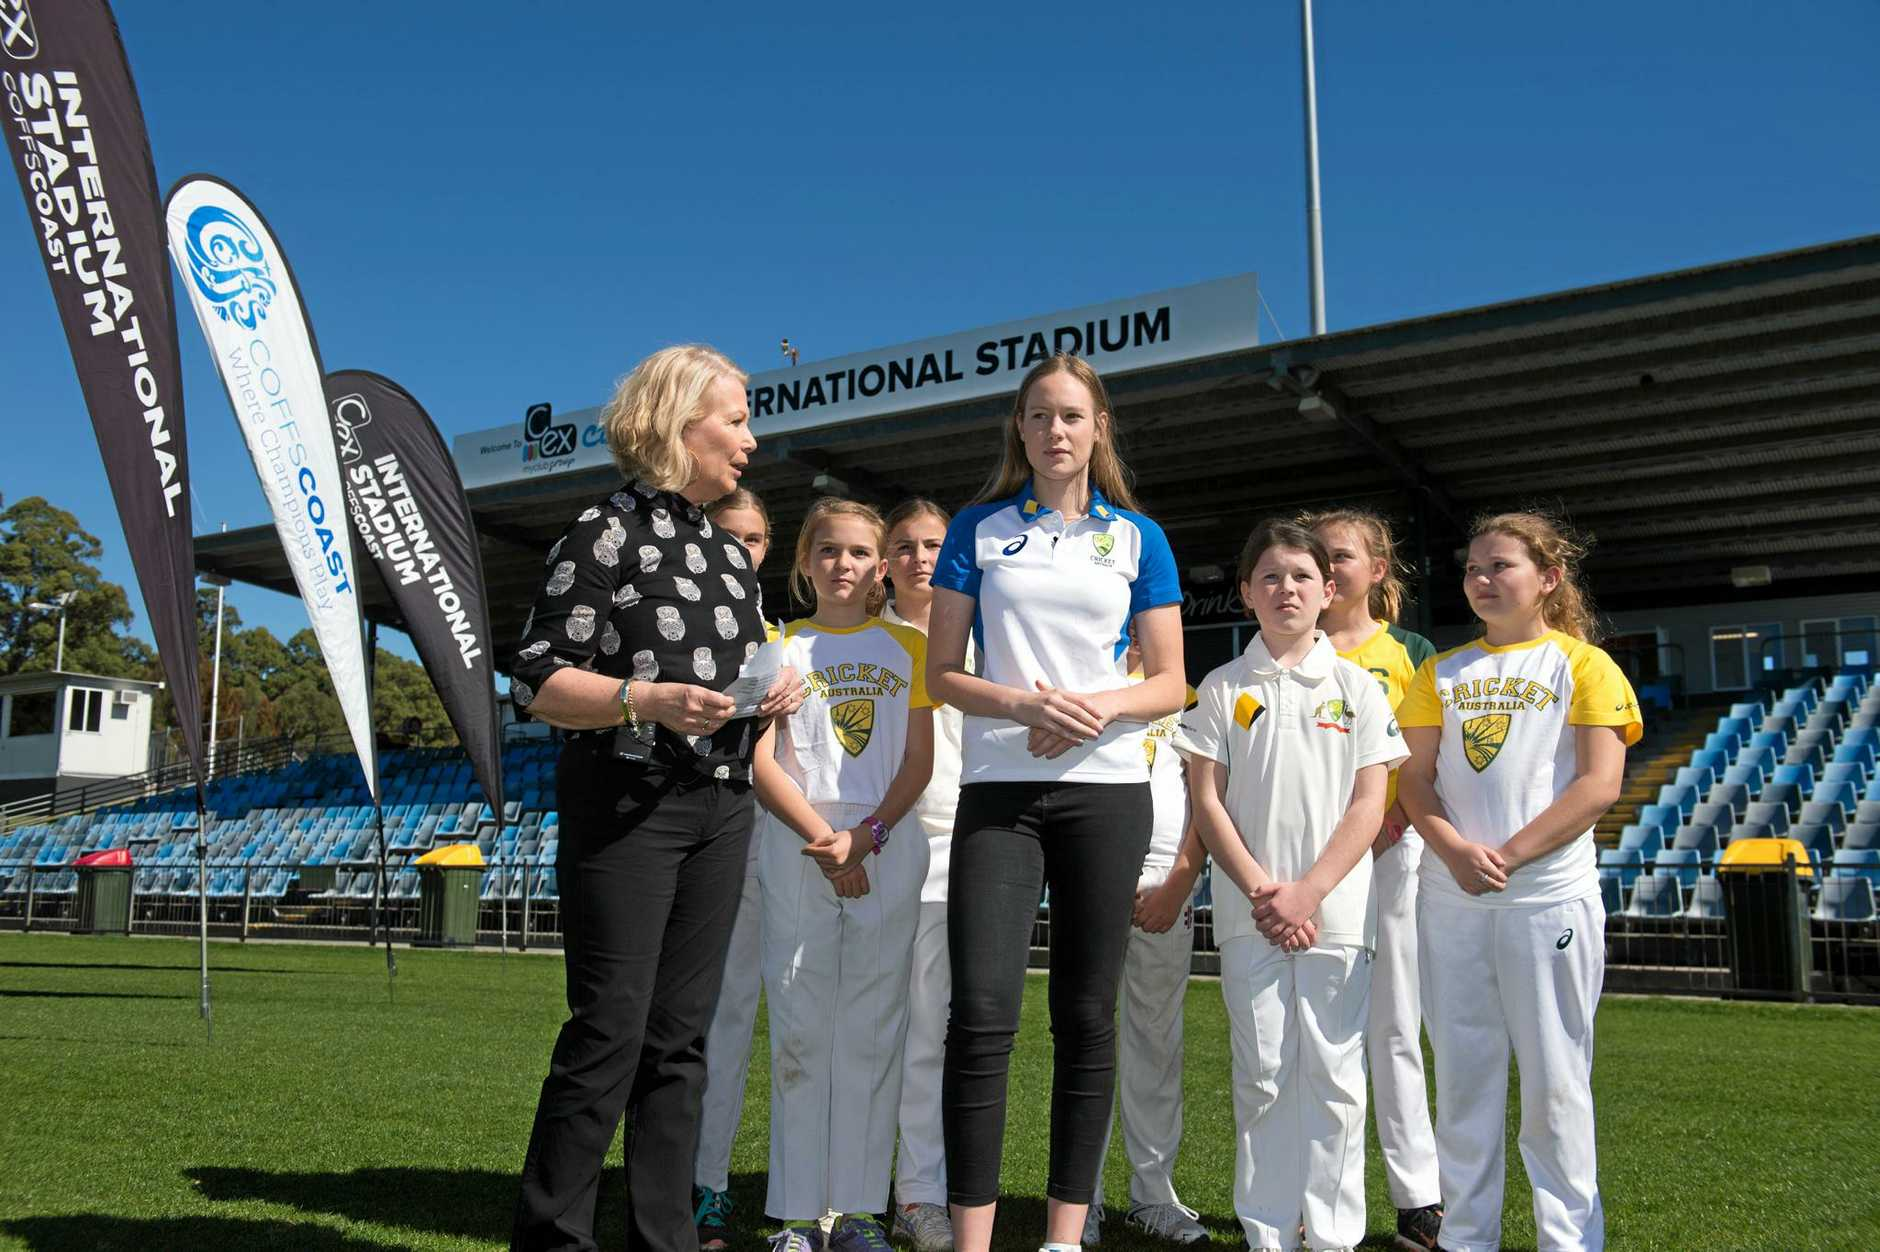 Coffs Harbour City Council Mayor, Cr Denise Knight along with Australian womens cricketer Lauren Cheatle and local juniors announce the start of ticket sales for the upcoming ODI's against England.